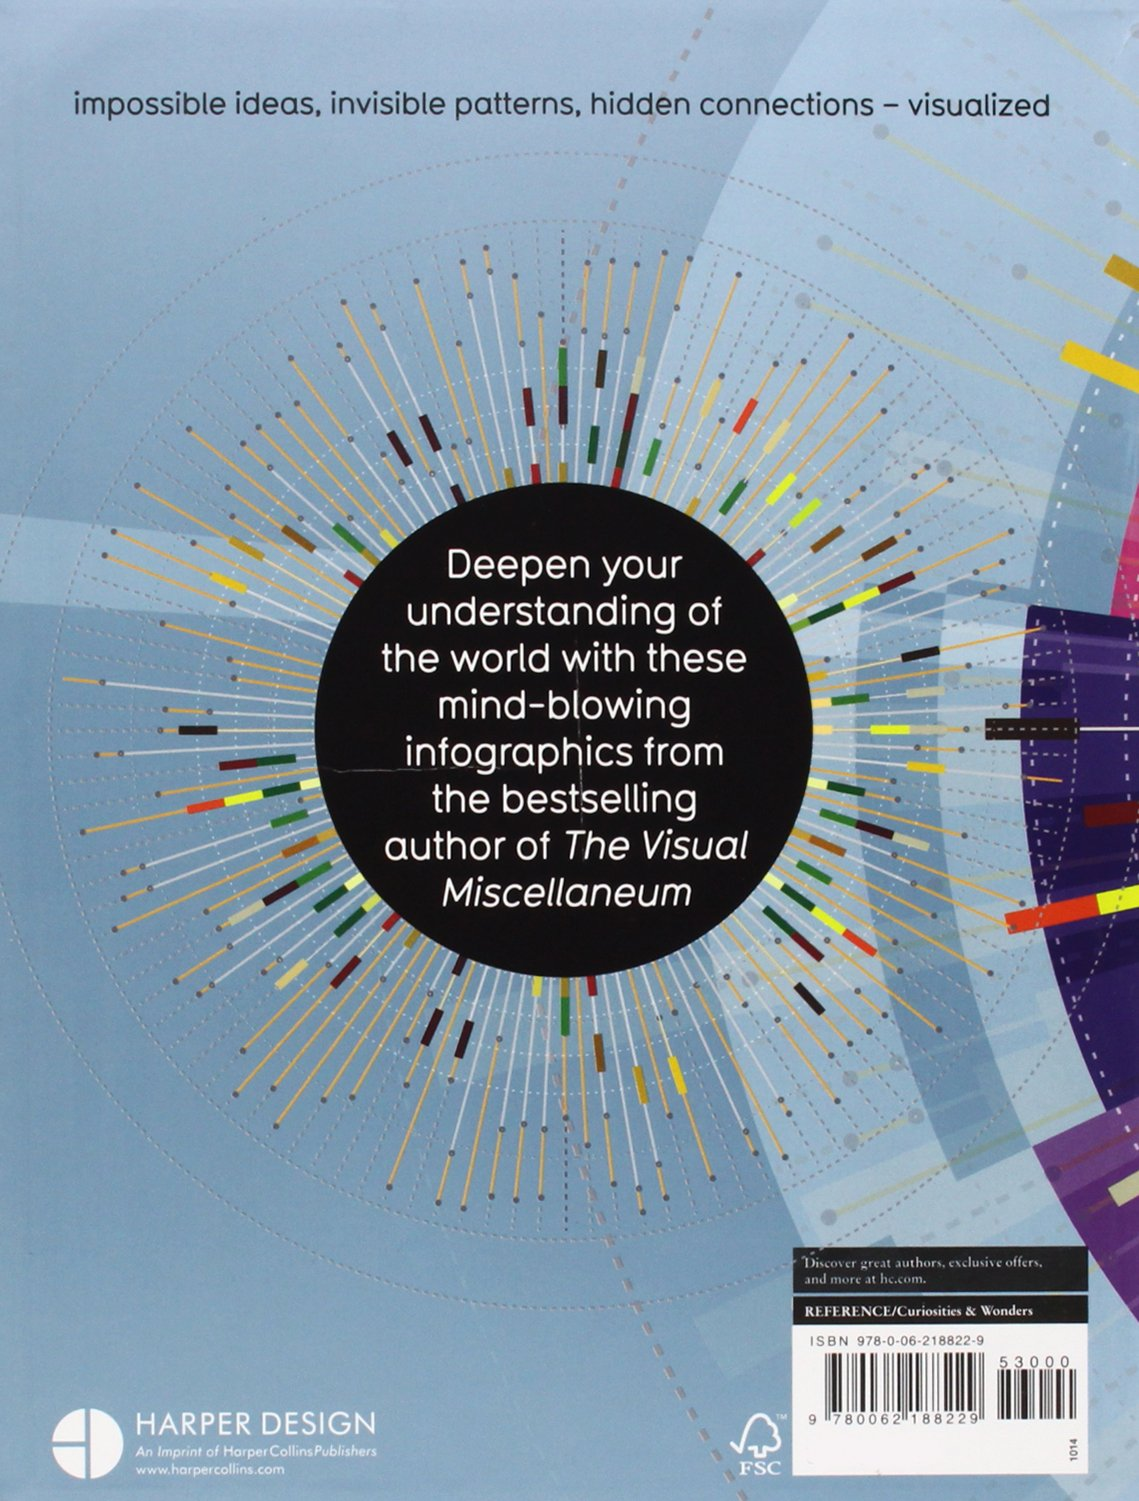 Knowledge Is Beautiful: Impossible Ideas, Invisible Patterns, Hidden Connections--Visualized by Harper Design